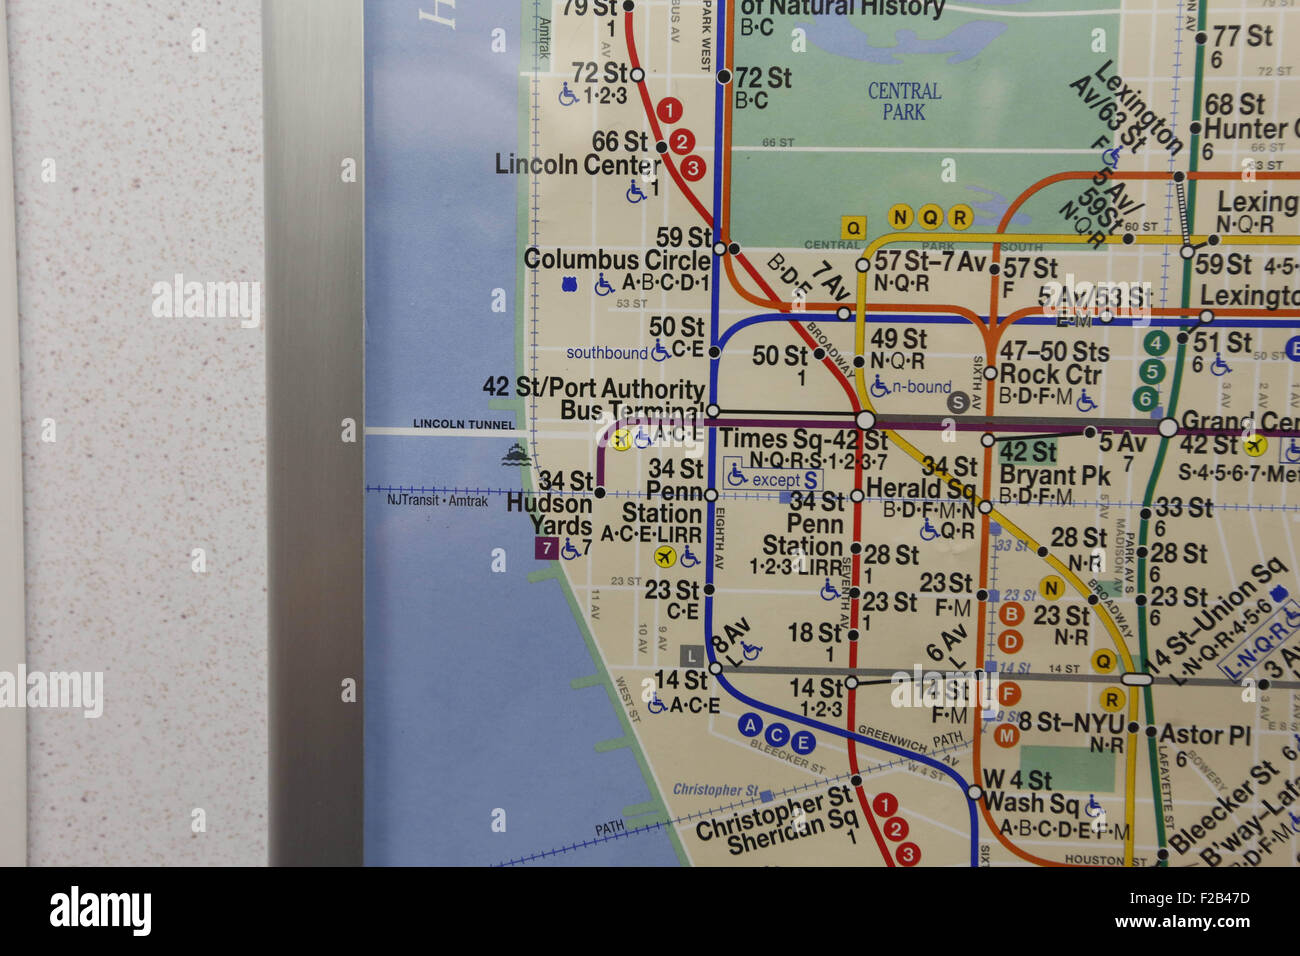 Nyc Subway Map 1910.Nyc Subway Map Stock Photos Nyc Subway Map Stock Images Alamy